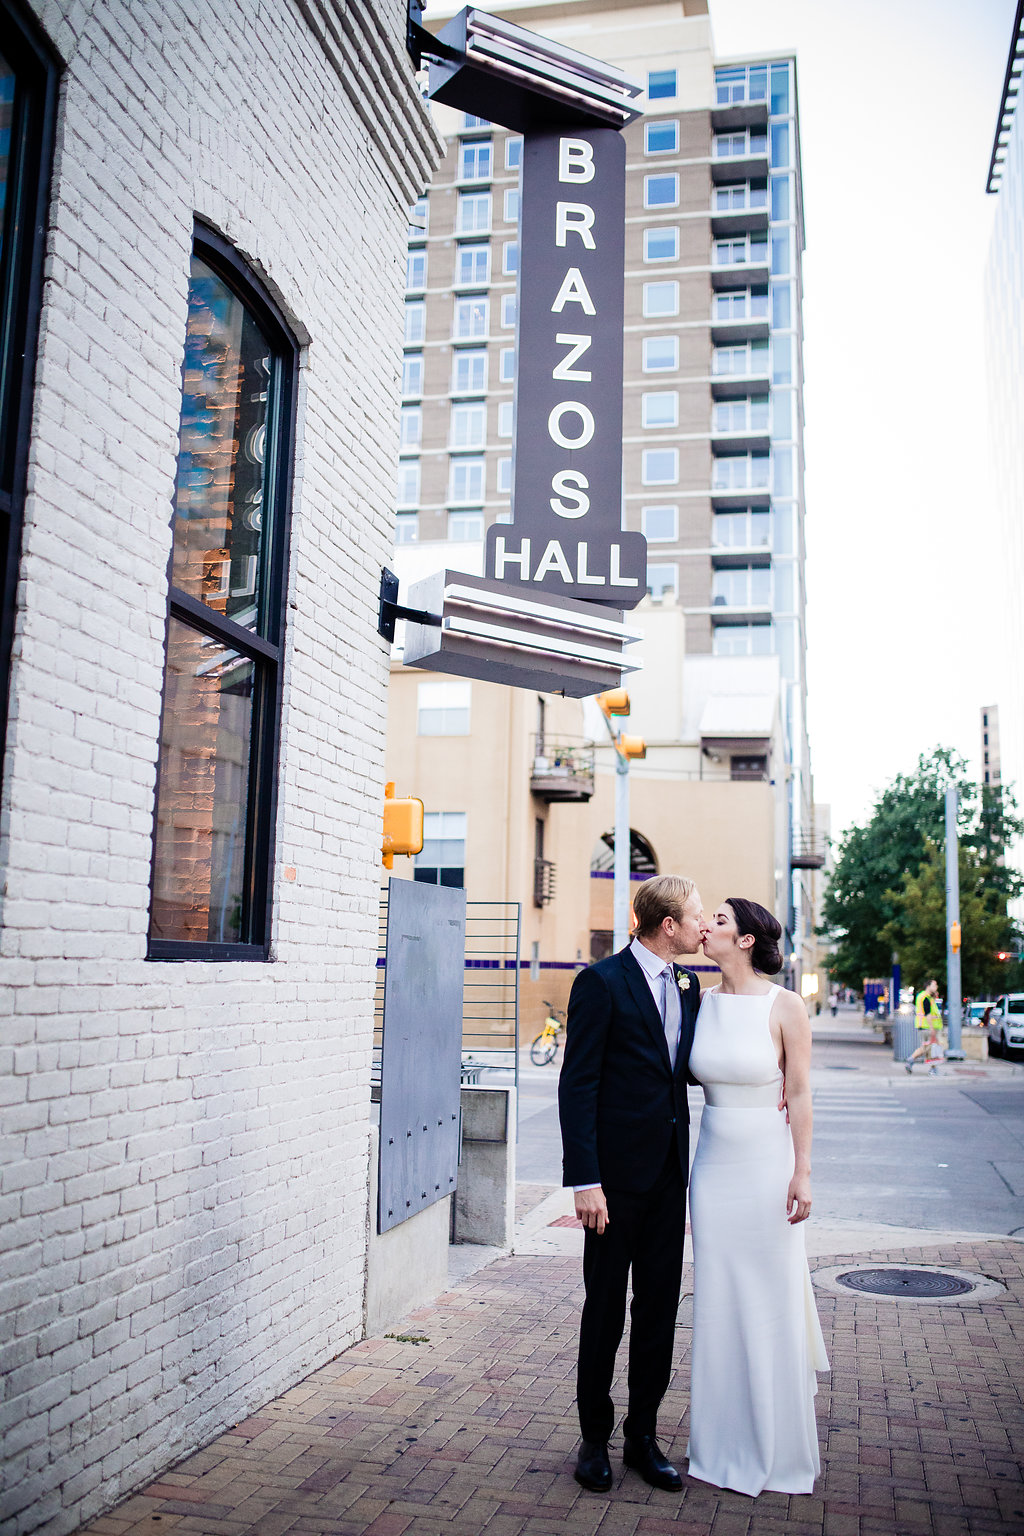 Brazos Hall Wedding- Austin Wedding Planner-894.jpg